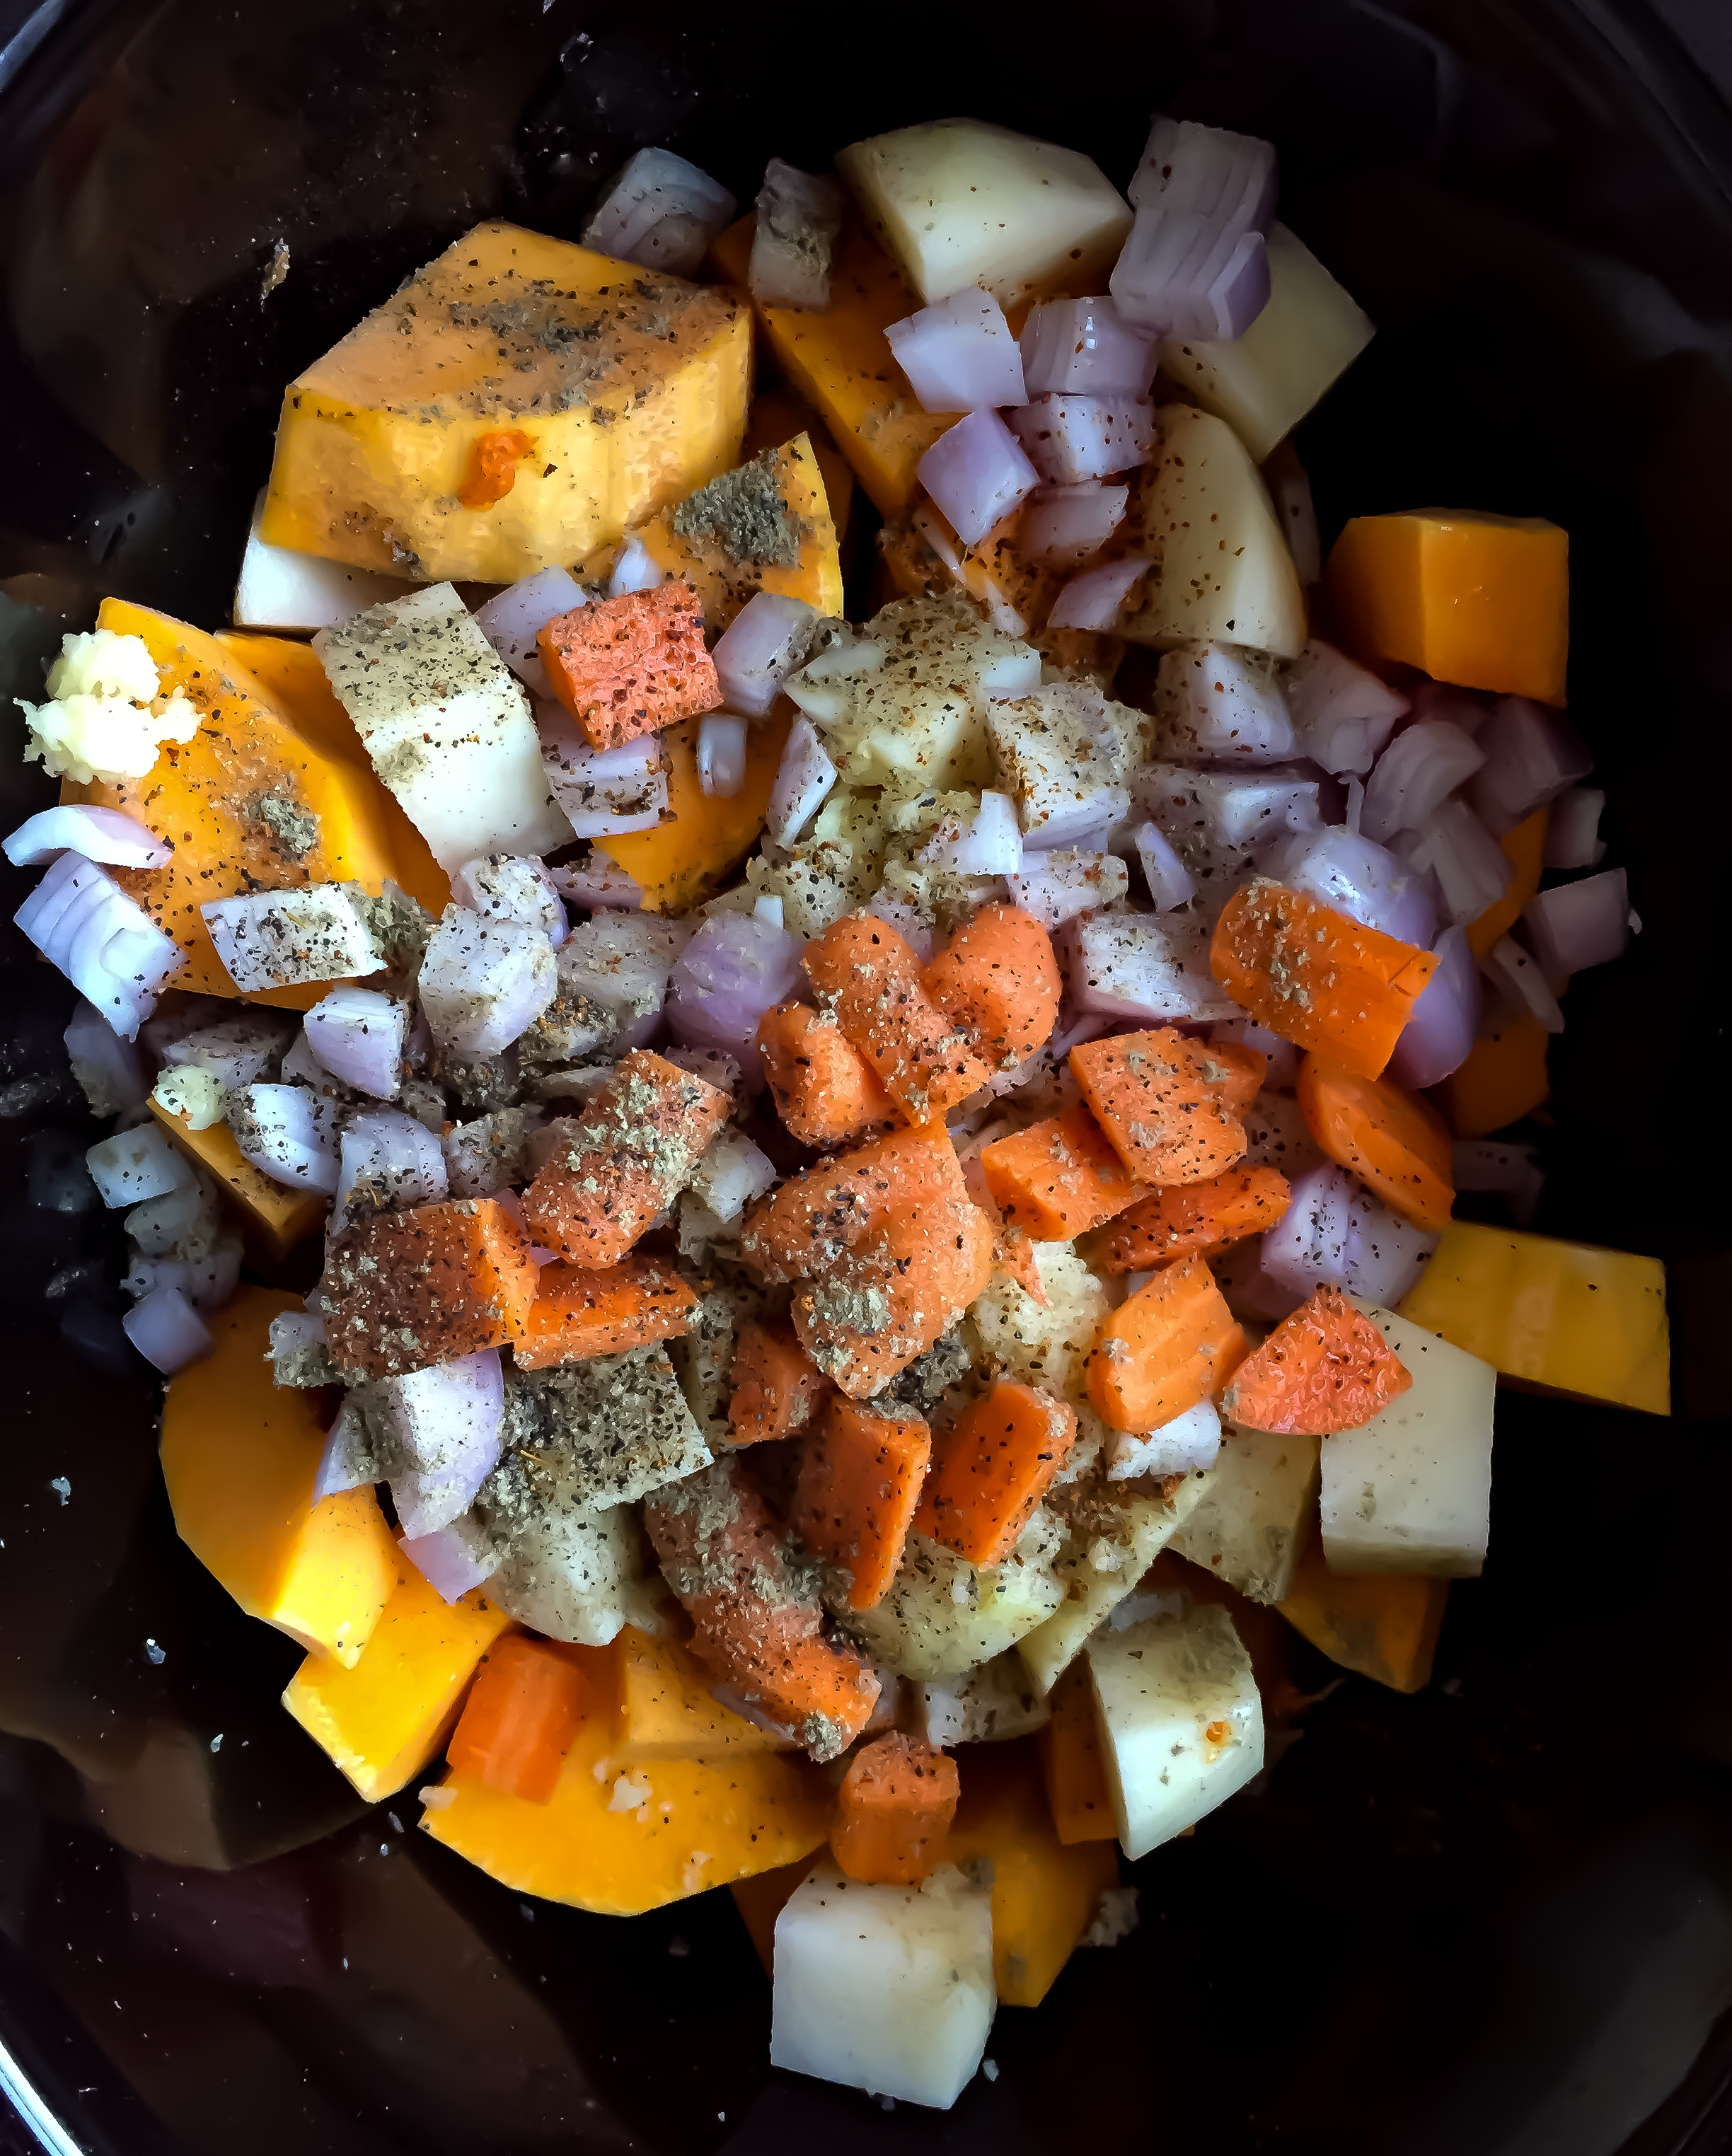 1. Place all the ingredients inside of a slow cooker. Turn on for 8 hours on low.